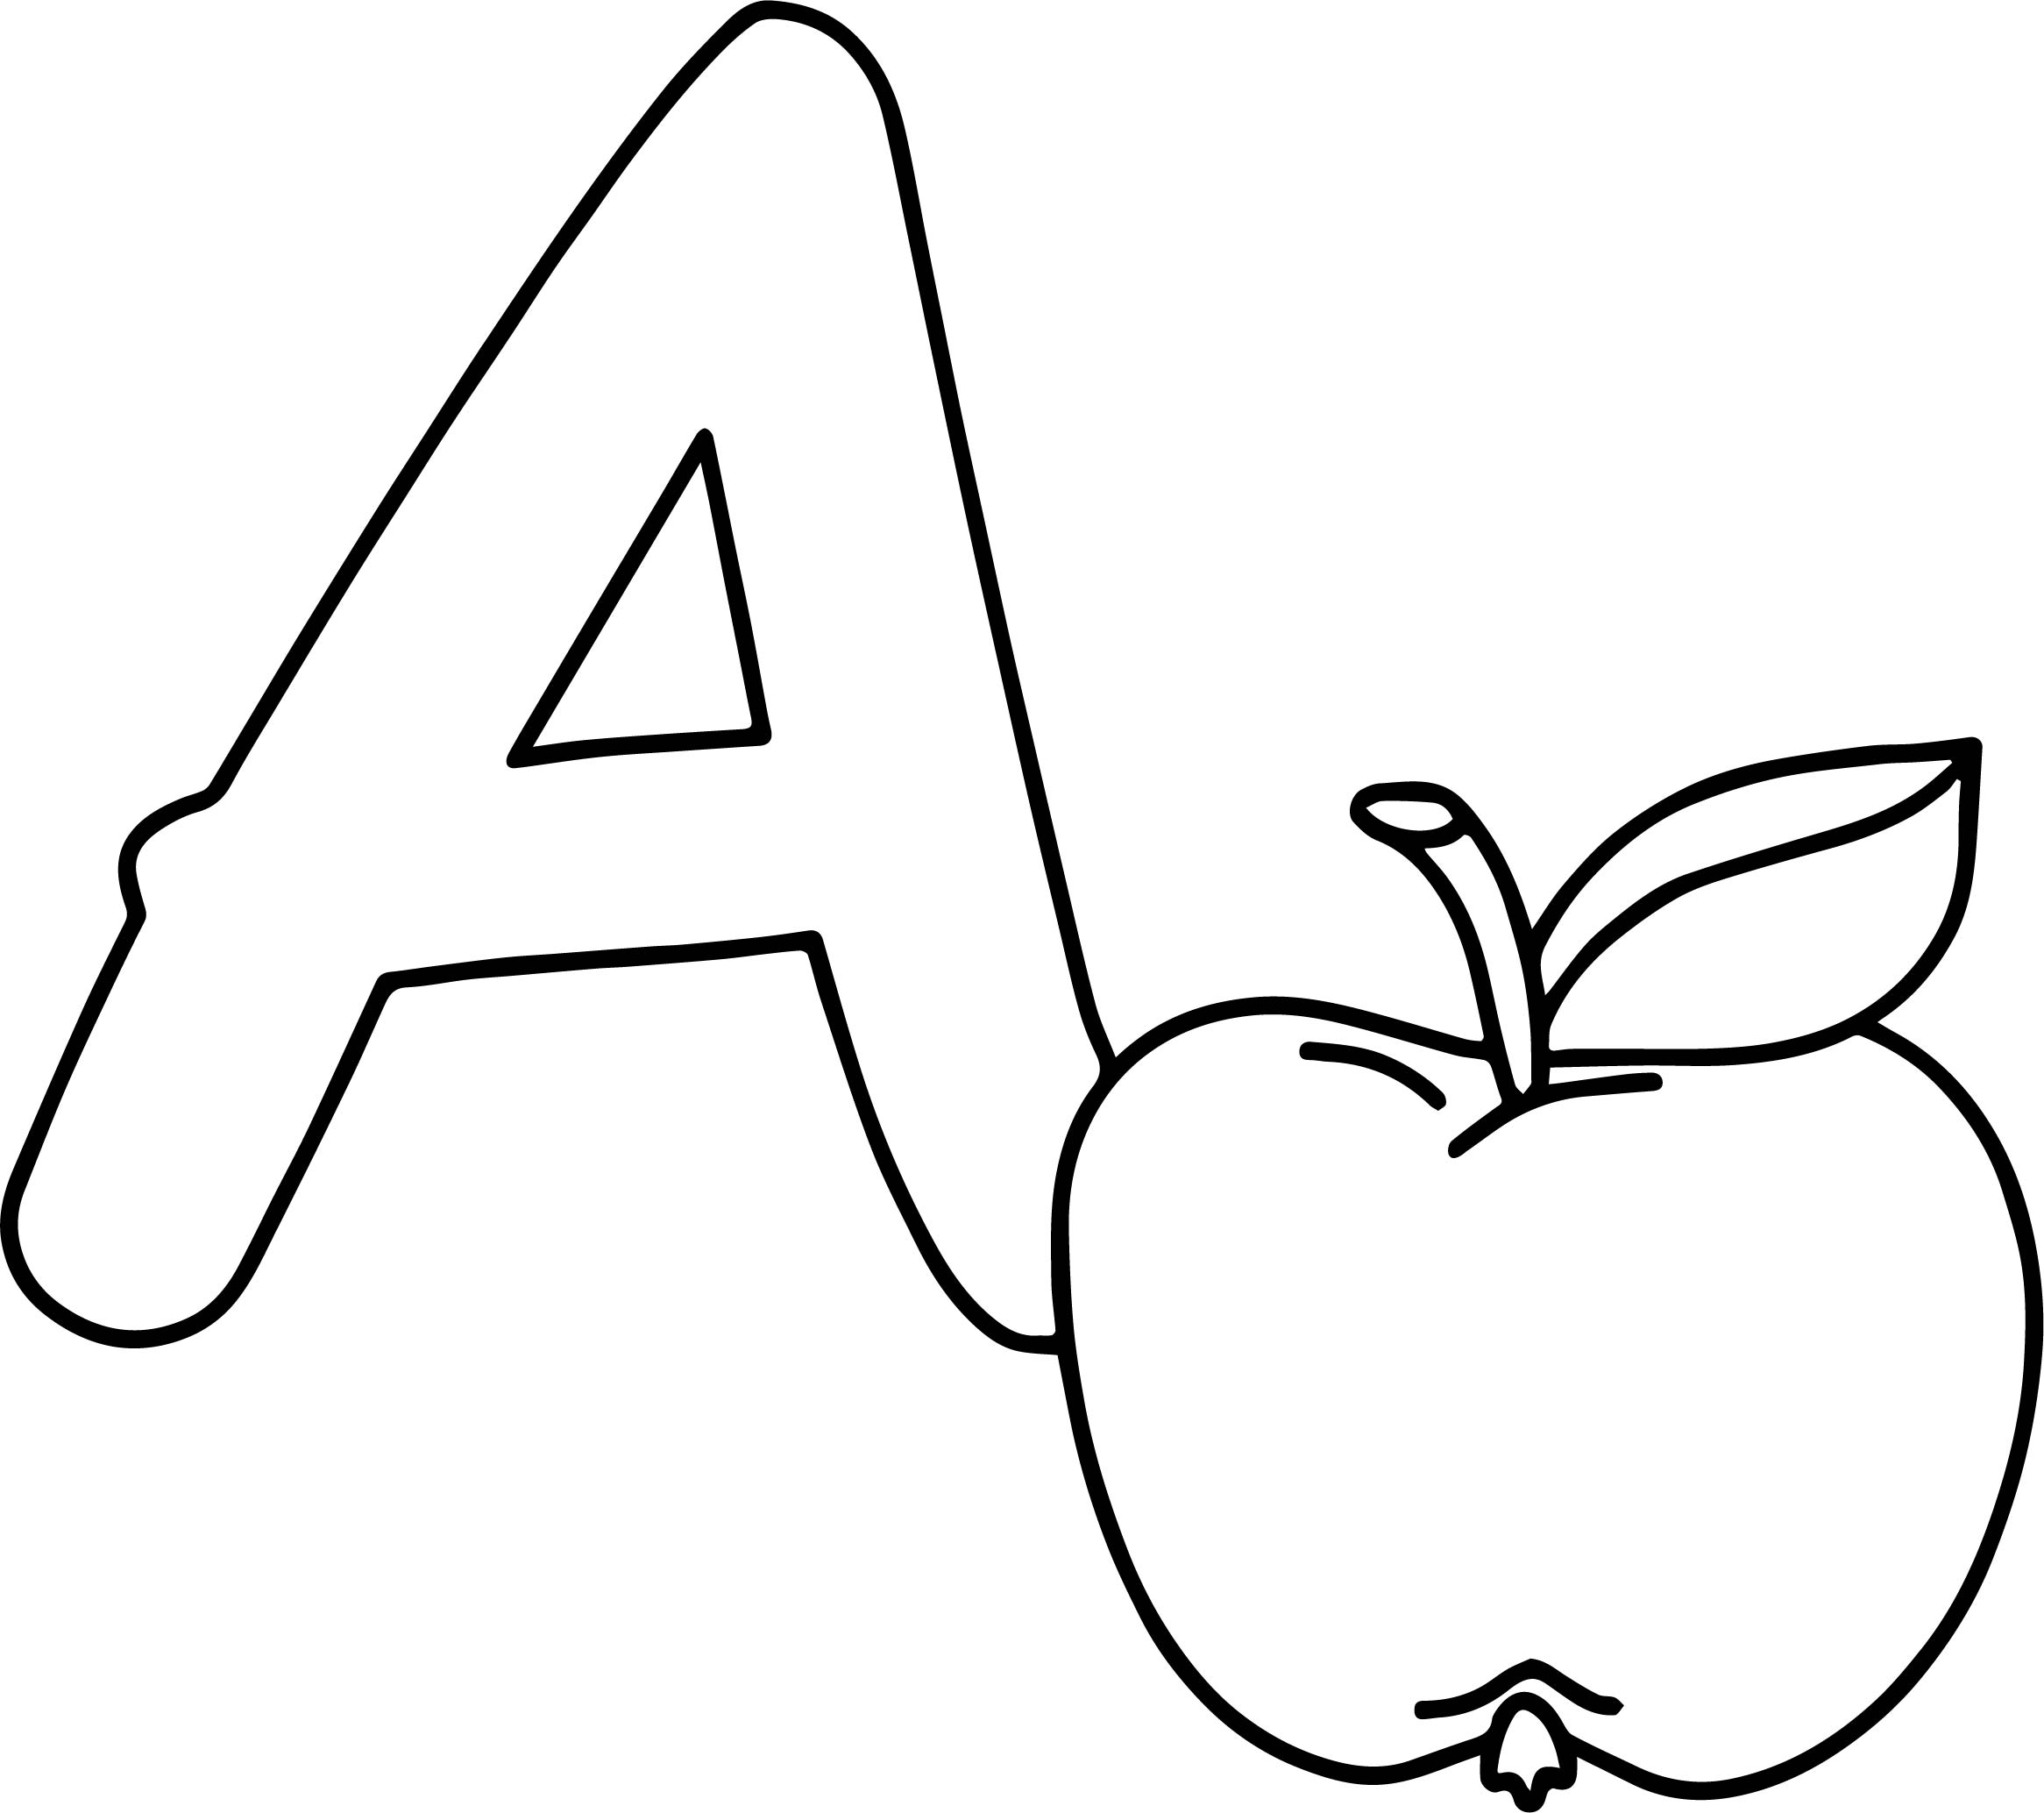 A Is For Apple Buchstaben Coloring Page